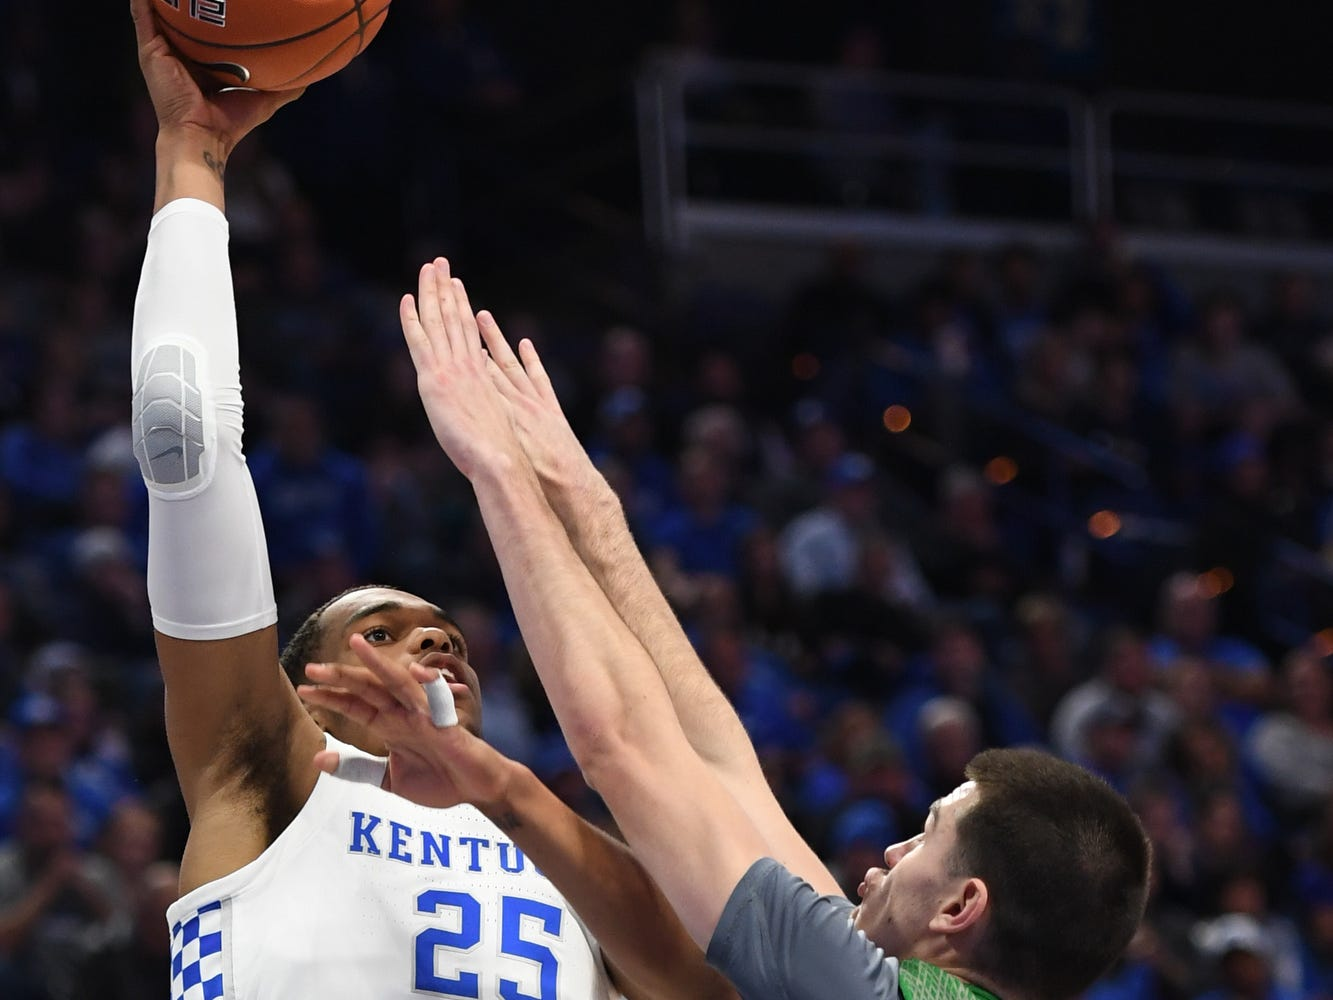 UK F PJ Washington puts up the ball during the University of Kentucky mens basketball game against North Dakota at Rupp Arena in Lexington, Kentucky on Wednesday, November 14, 2018.